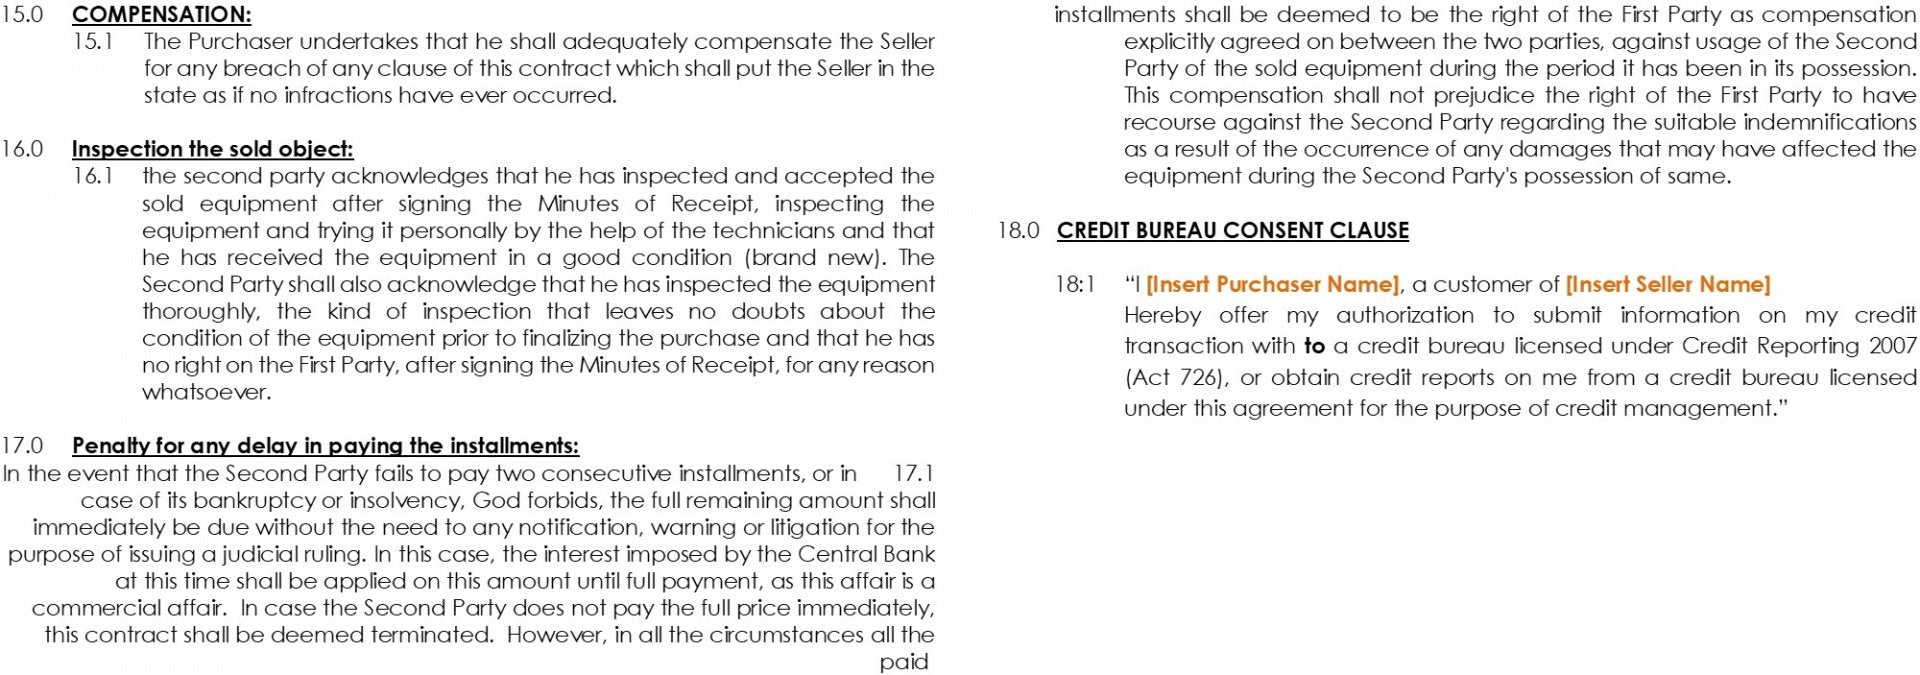 sales agreement with reserving the right of ownership 6